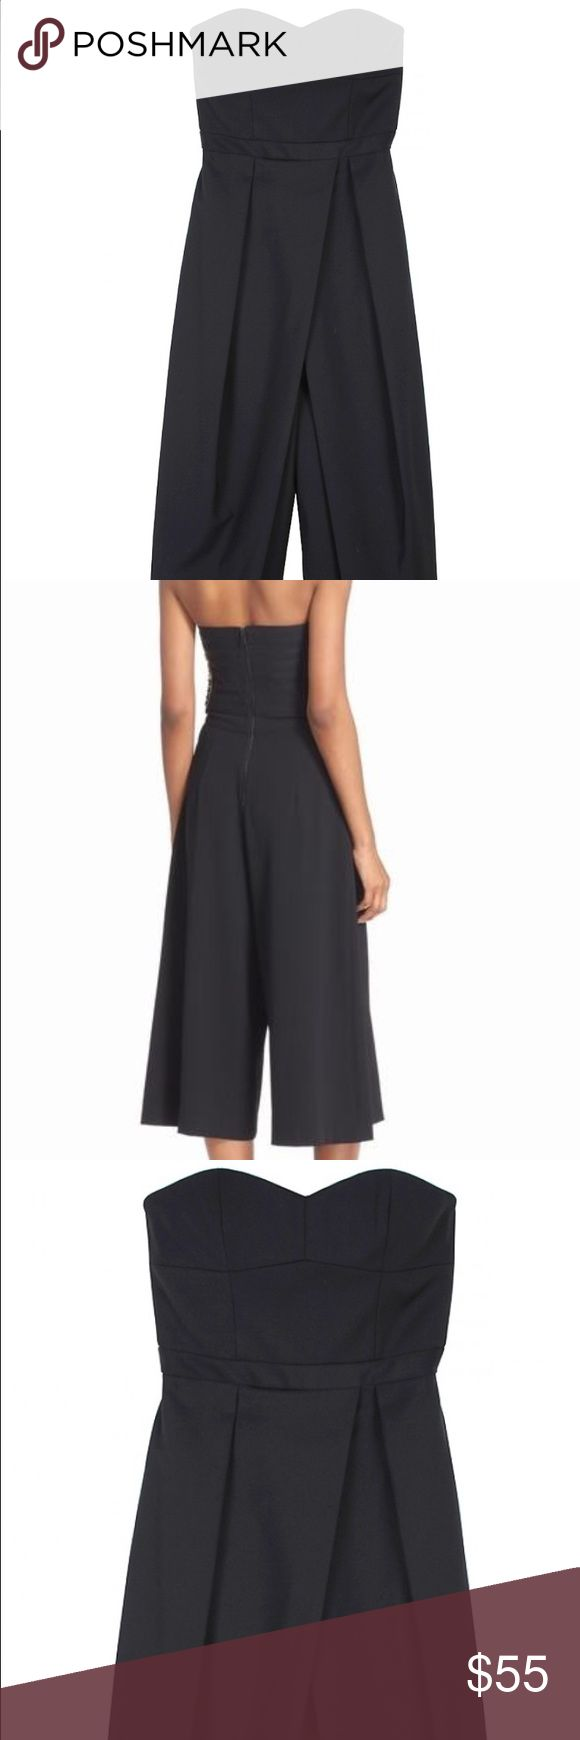 Tibi Agathe Jumpsuit: perfect 4 holiday parties😍 One of our best-selling jumpsuits is back in both neutral and of-the-moment spring hues. A must-have for the modern woman, this strapless jumpsuit is crafted from a lightweight Italian cotton blend for your day to night midi look. Zip closure at back. Inner corset bustier construction. Tagged an 8 but fits small like a 6. Tibi Dresses Strapless